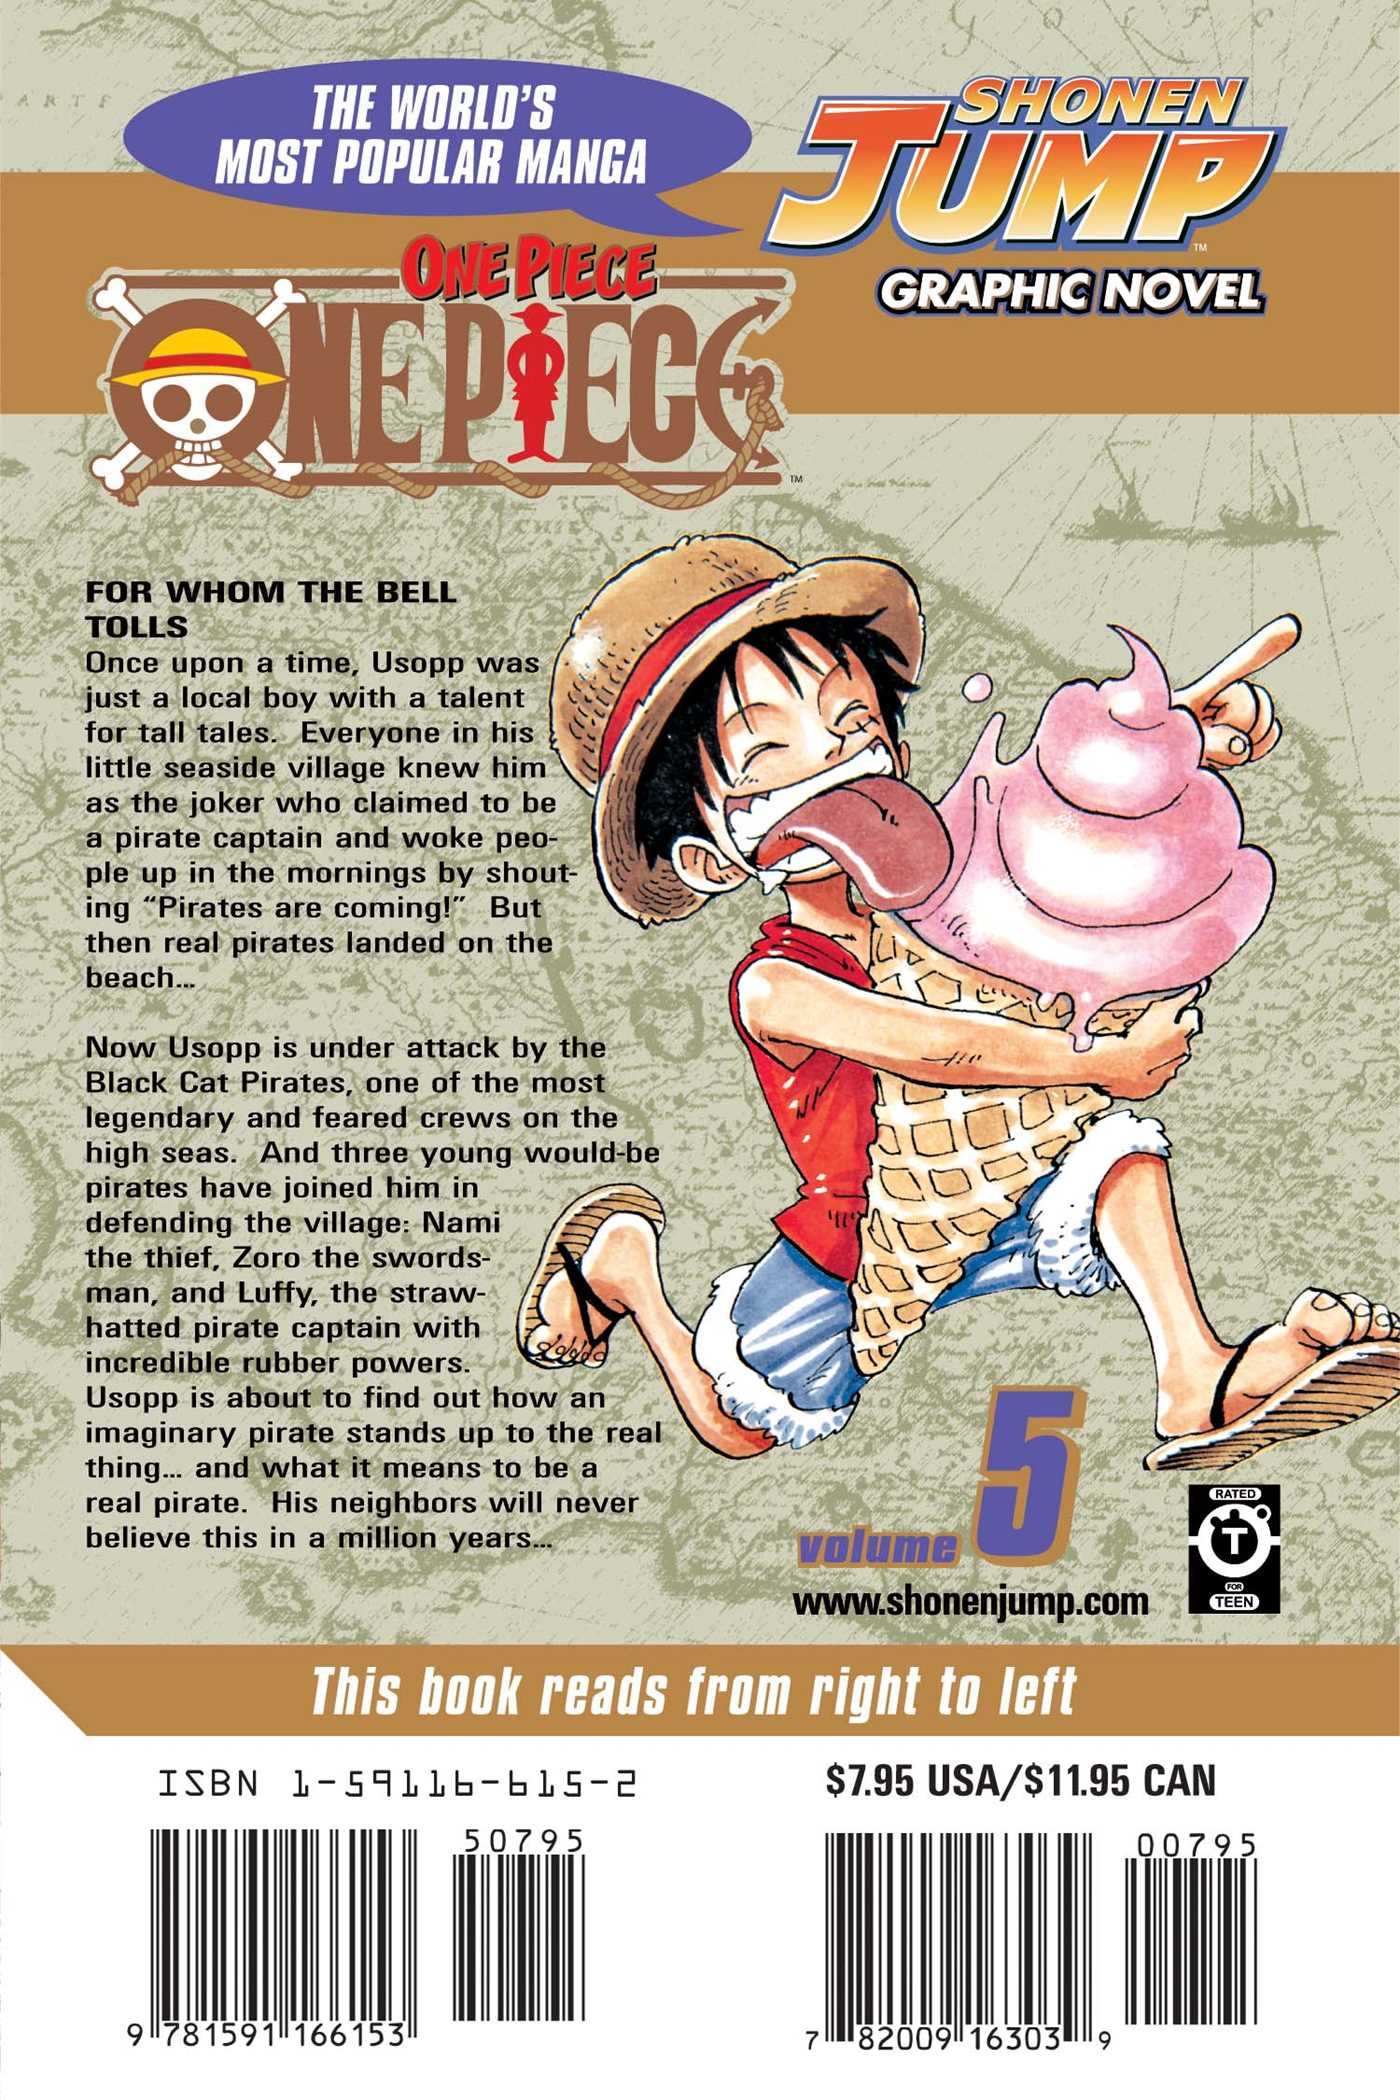 One-piece-vol-5-9781591166153_hr-back